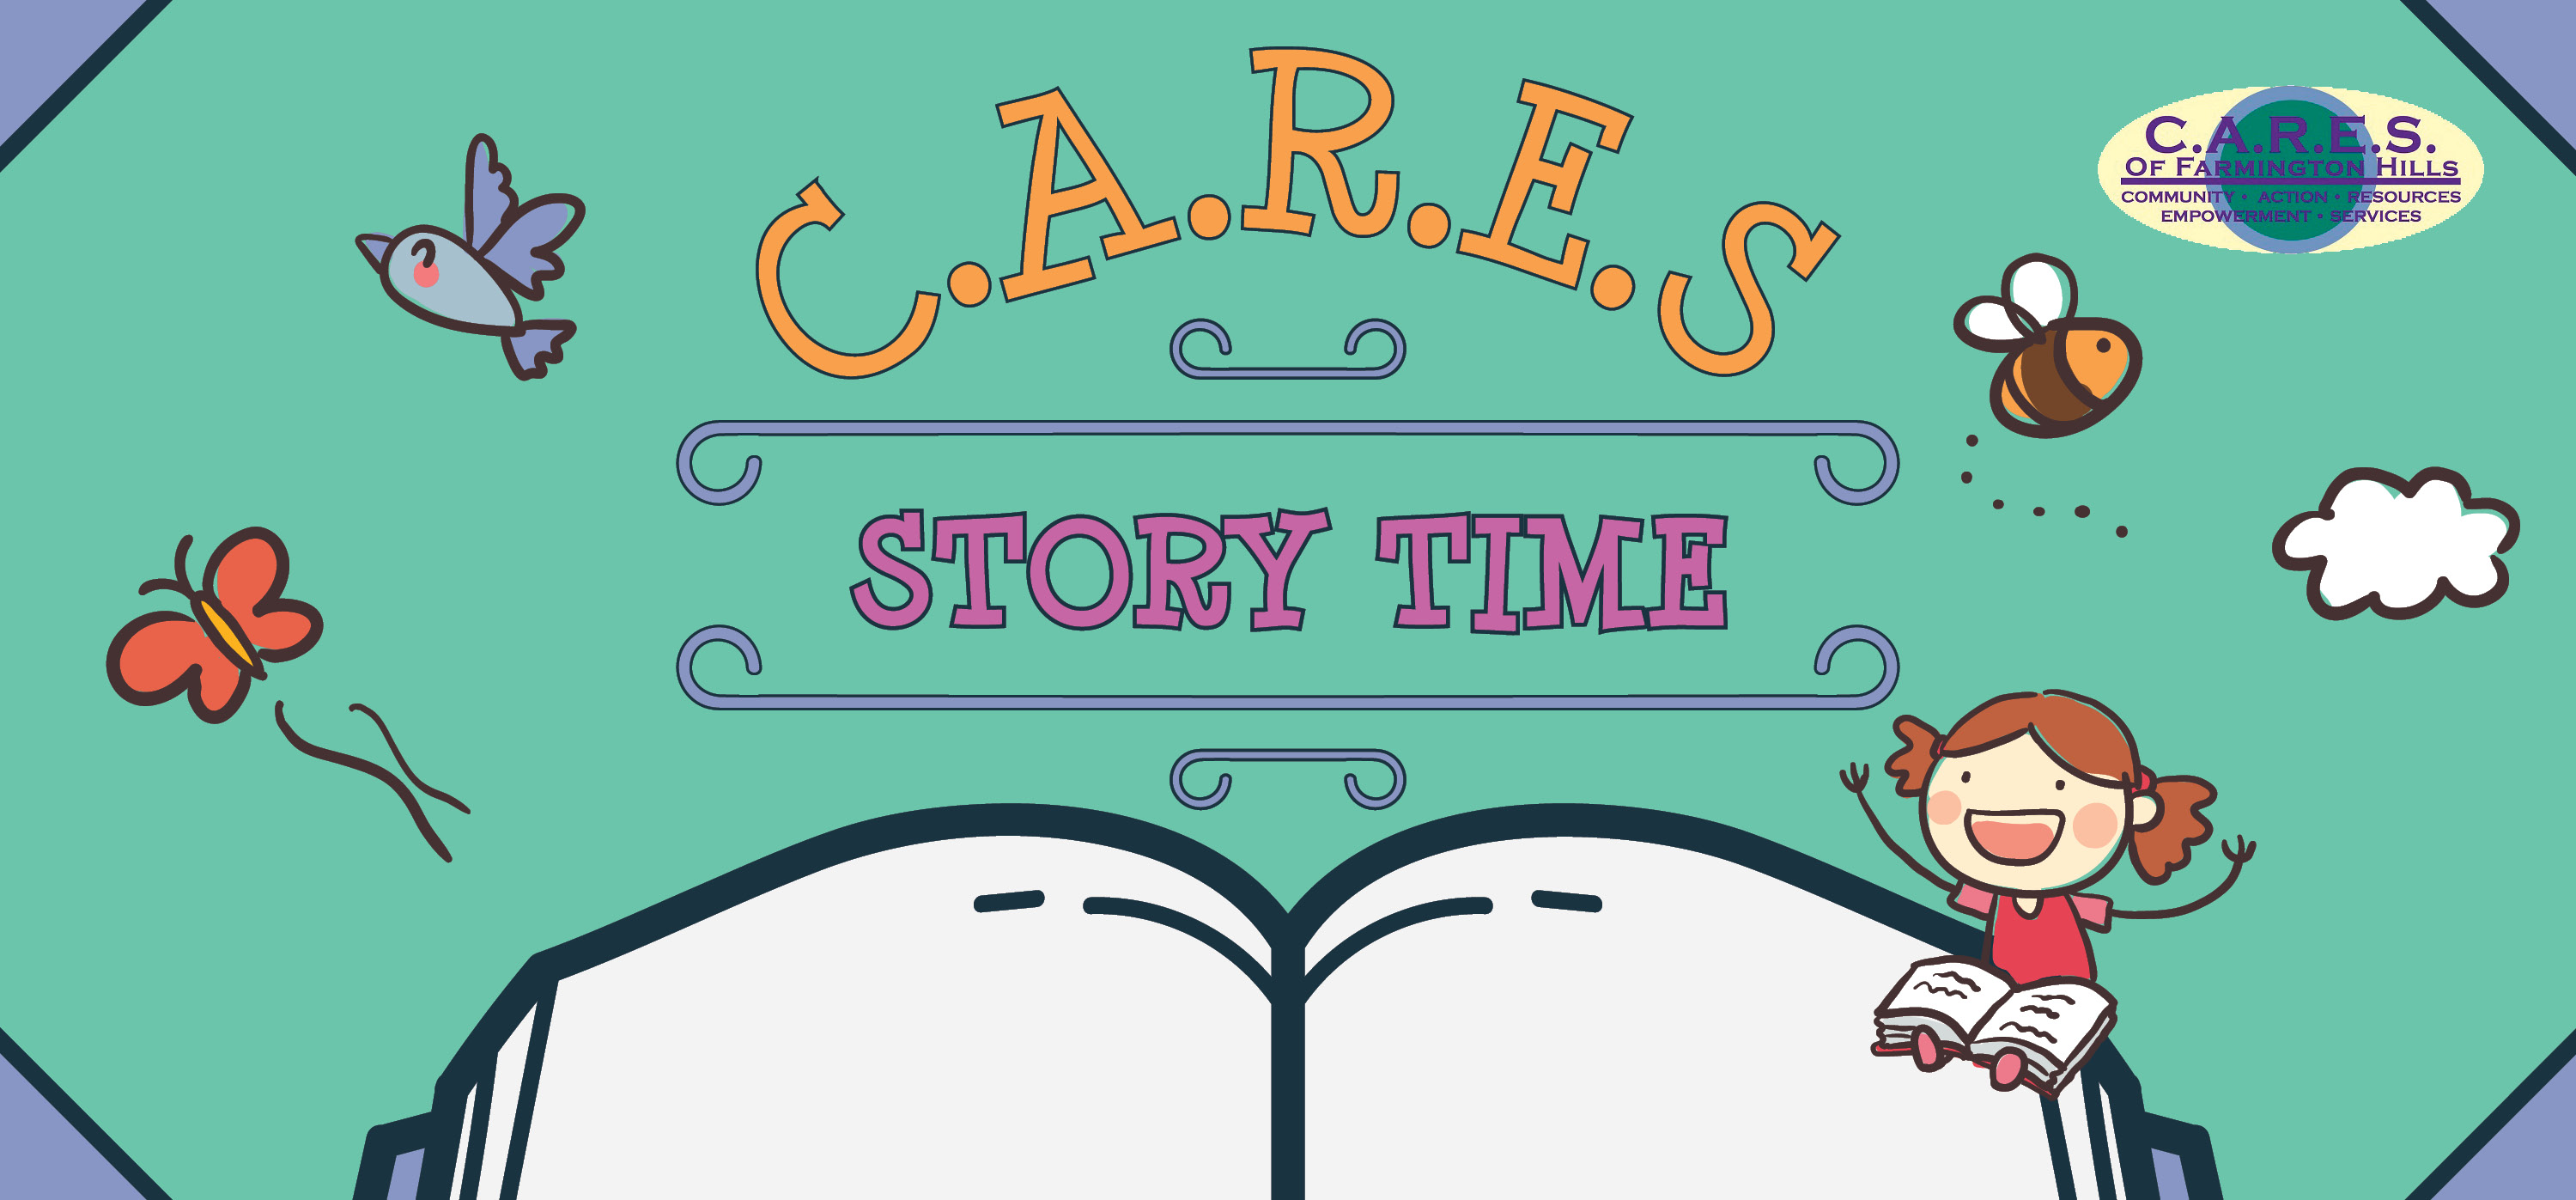 C.A.R.E.S. Story Time